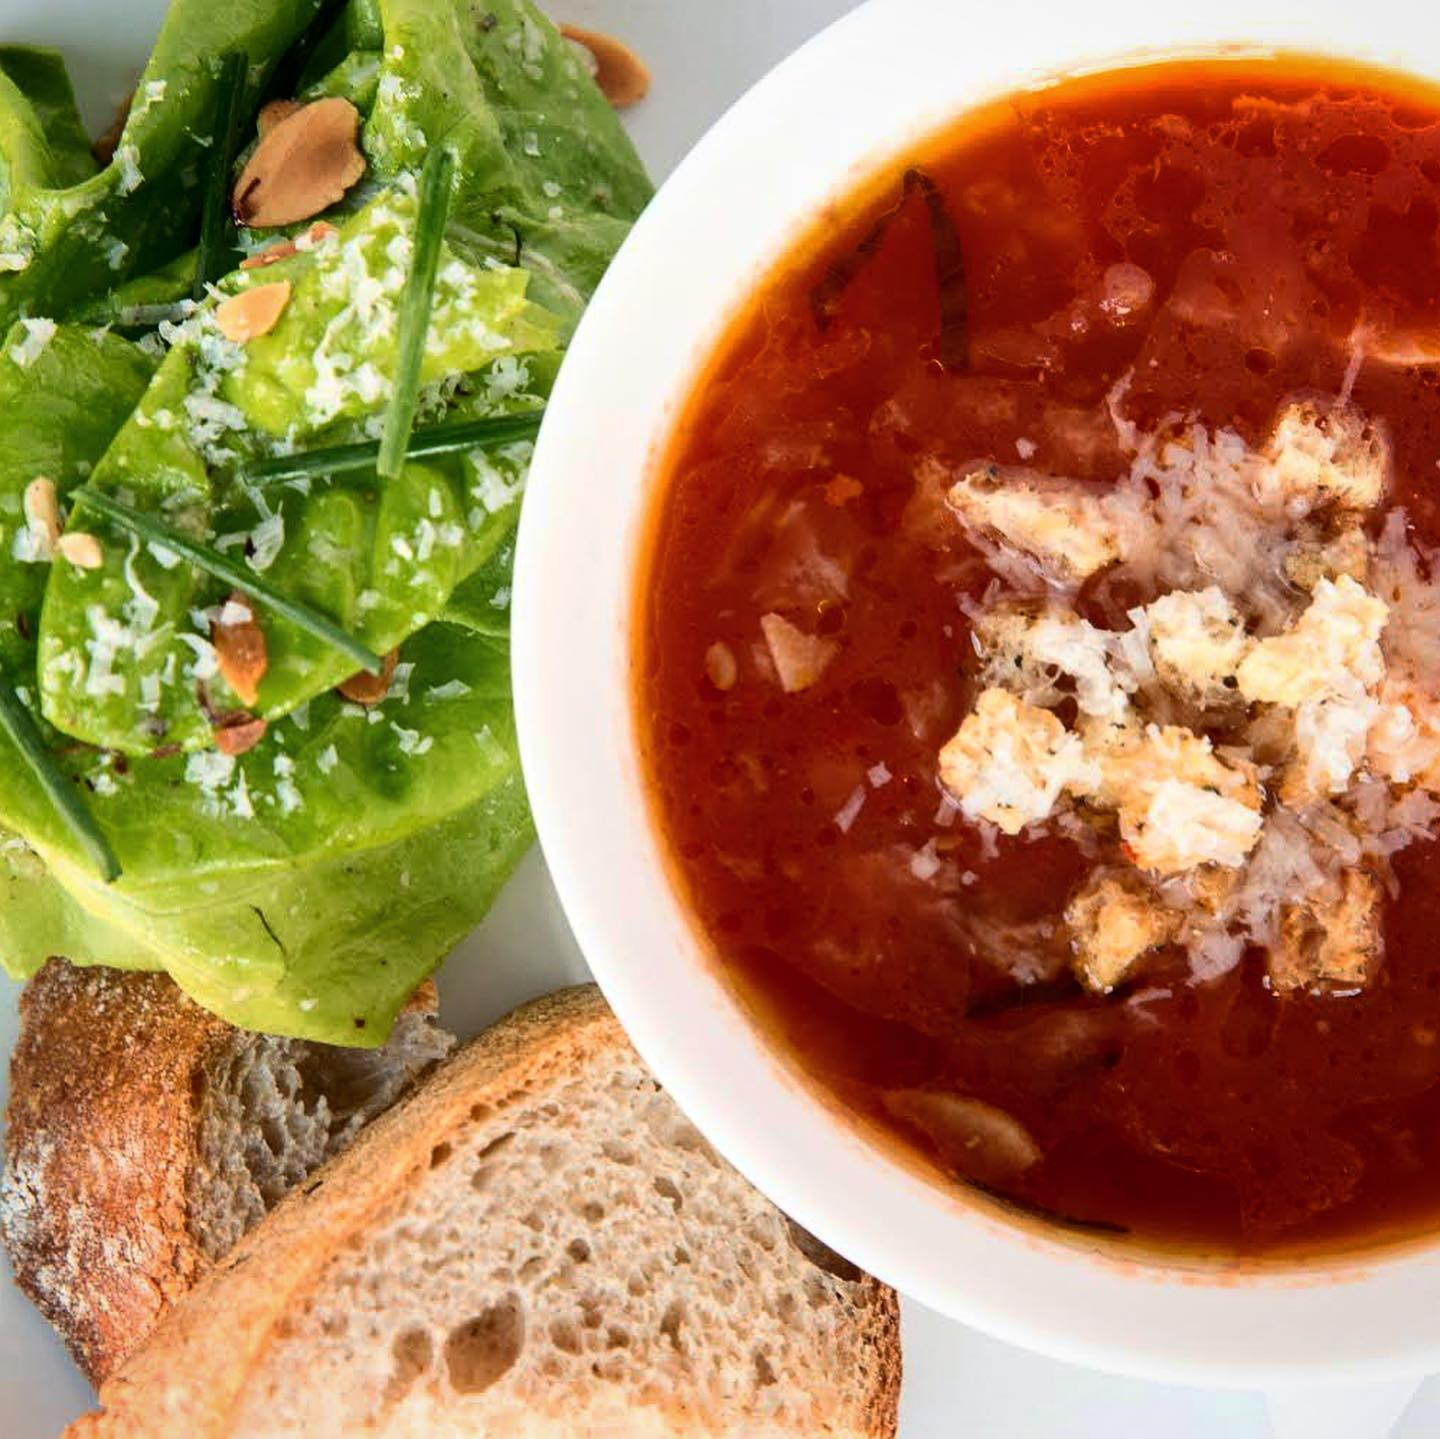 A bowl of bright red tomato soup topped with crumbles of bread and shreds of cheese on a white plate alongside slices of crusty bread and a small green salad